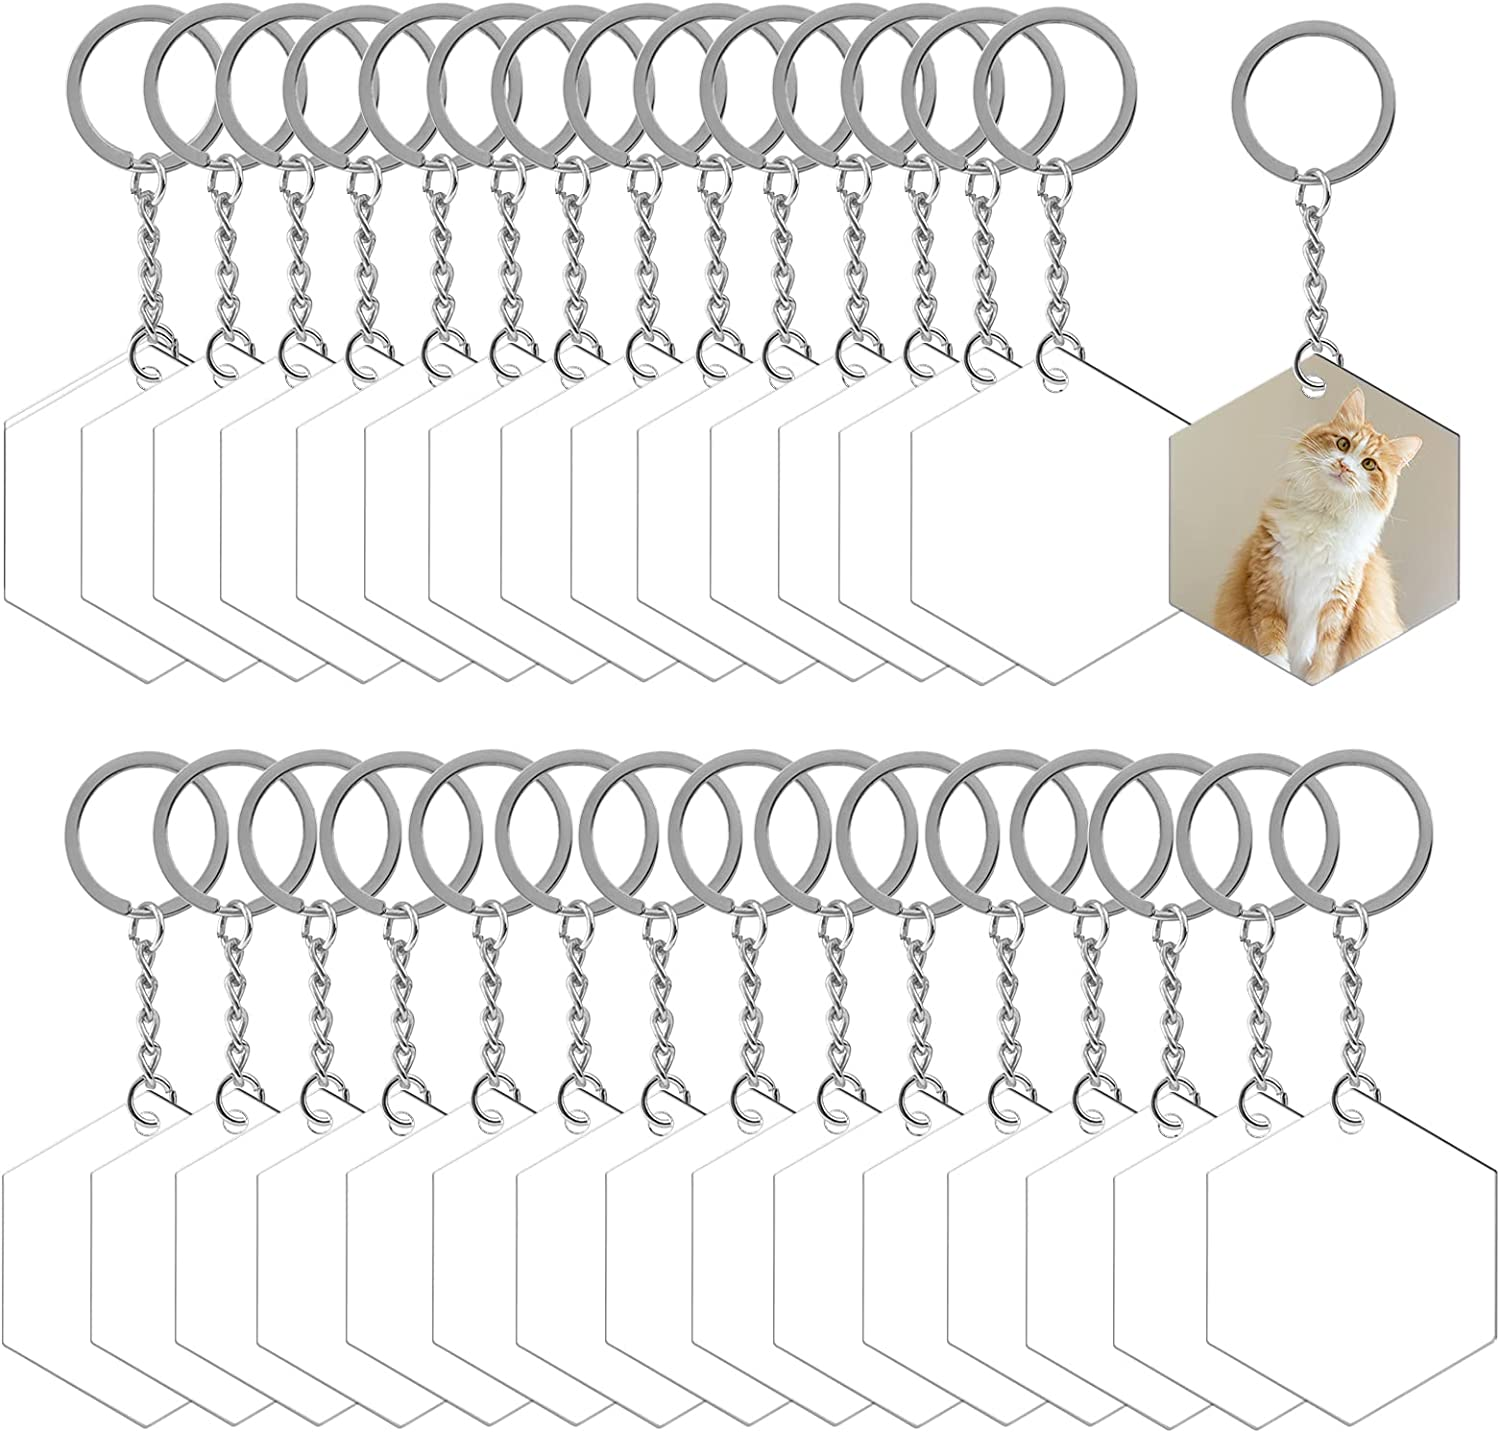 LANBEIDE Acrylic Keychain Blanks Atlanta Mall 60 Pcs for Keychains Clear Vin Sales of SALE items from new works